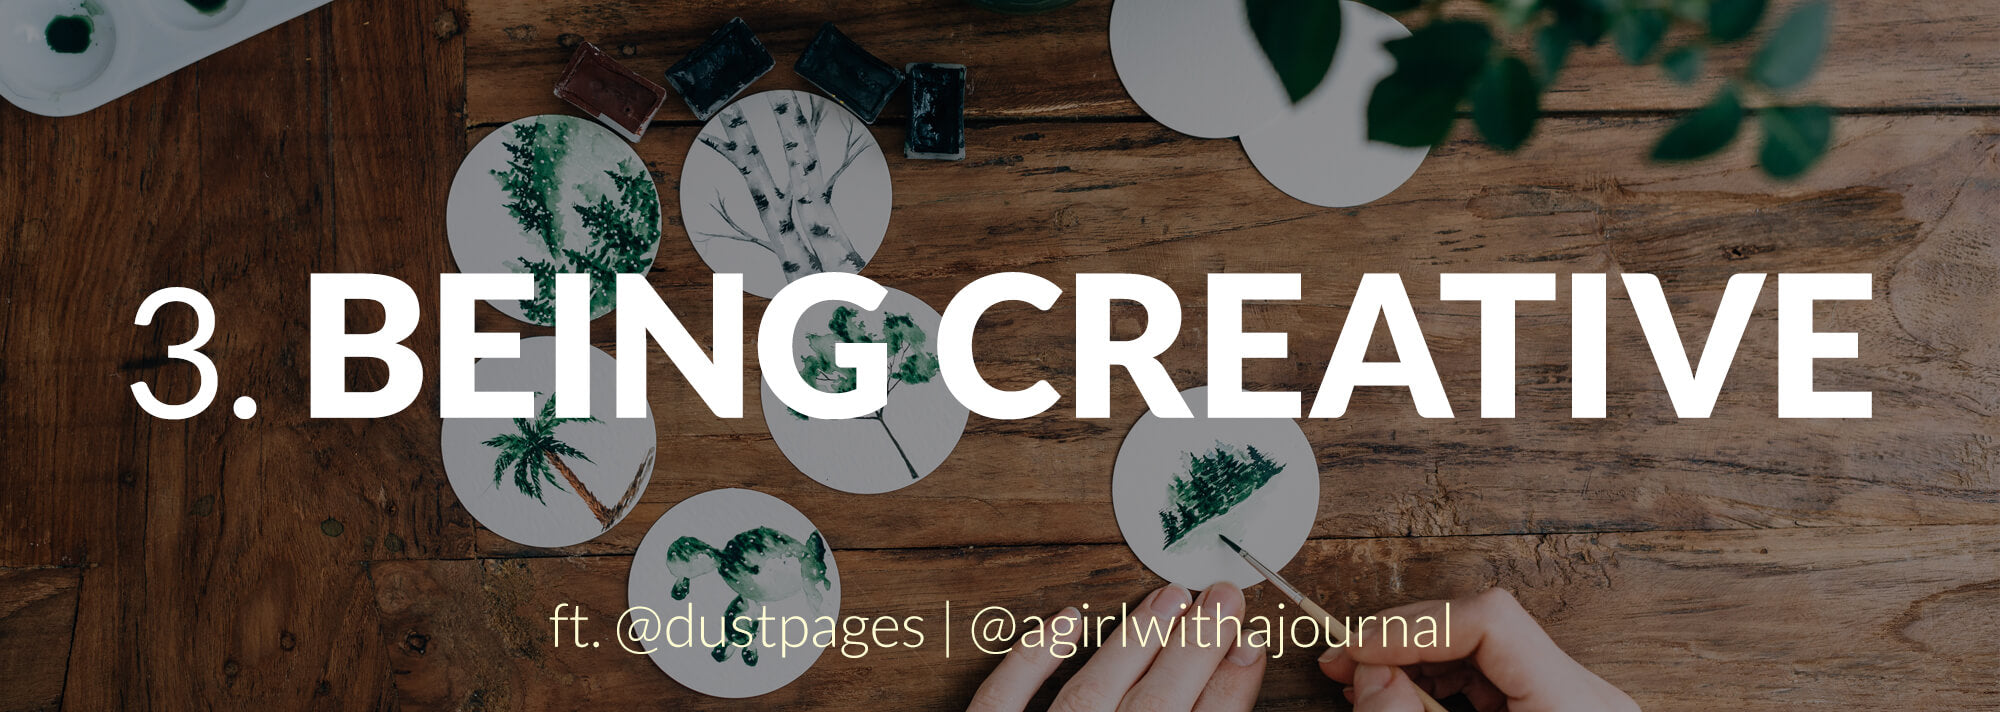 header image - being creative